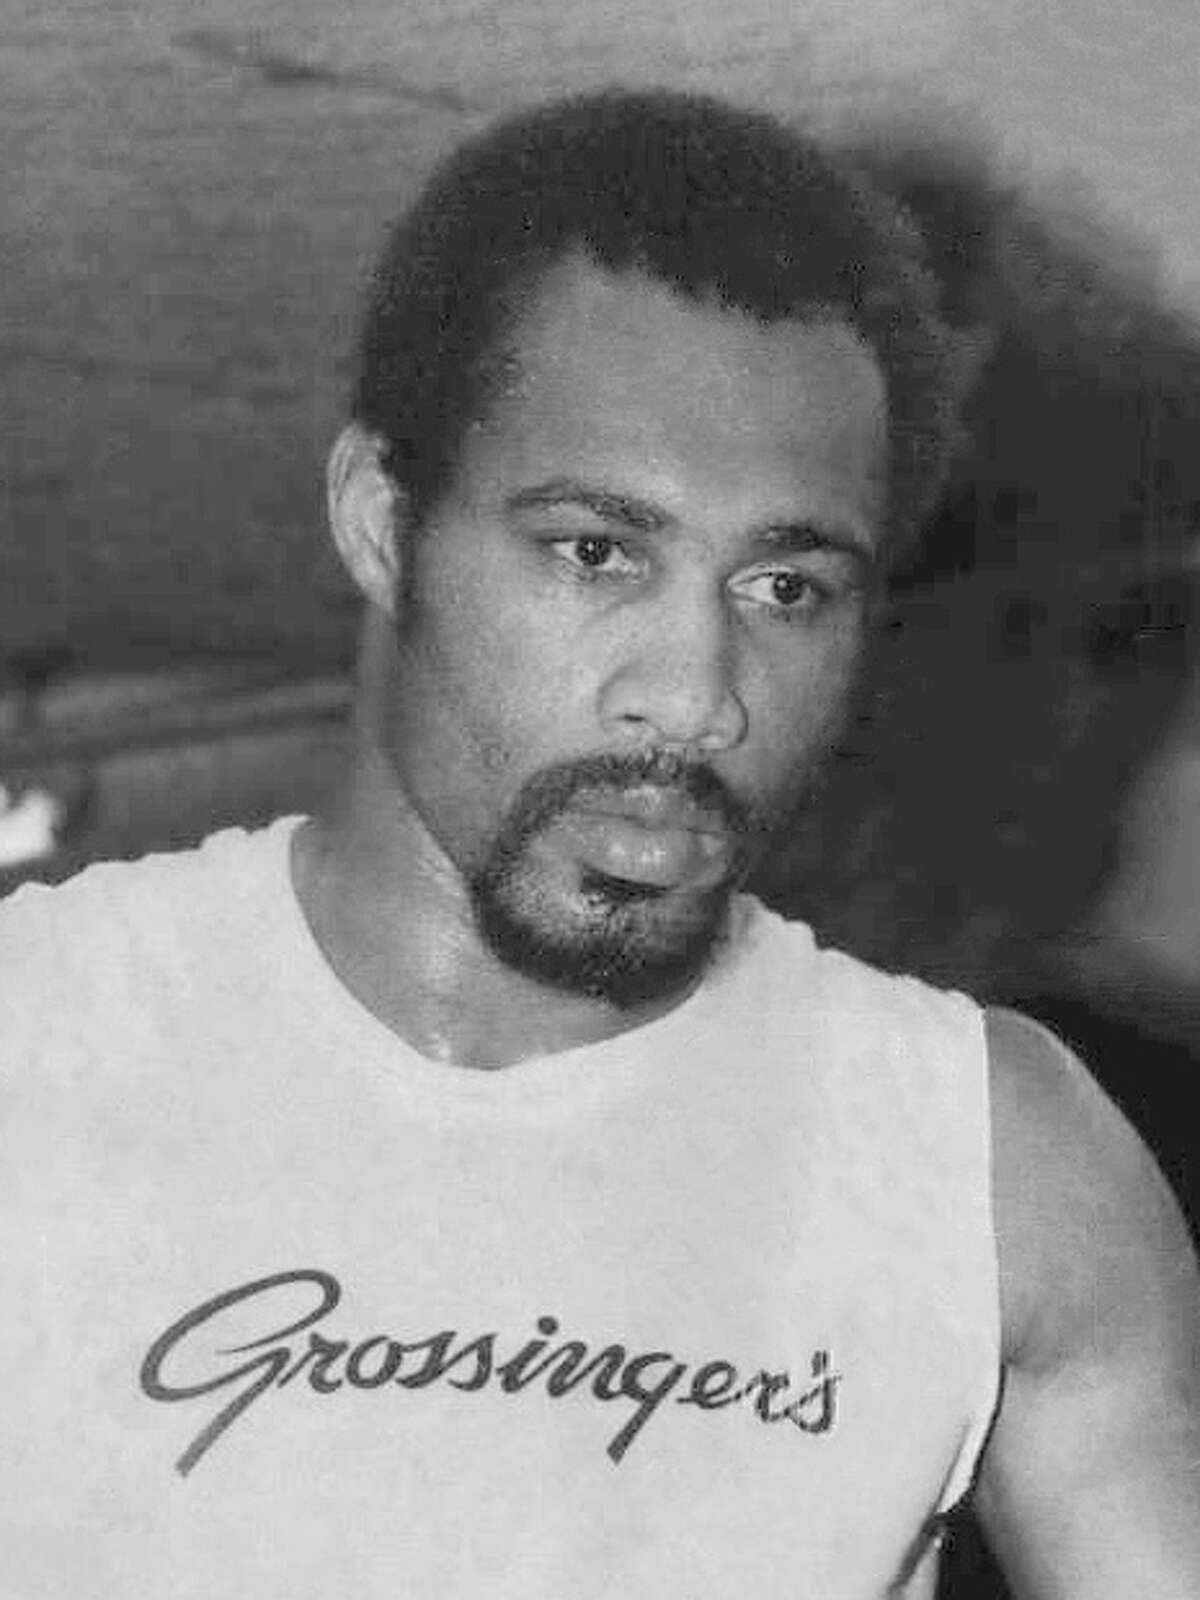 Ken Norton went to Jacksonville High School where he saw success in football. In 1960, he was named an All-American for football for his defensive skills. Norton won the WBC Heavyweight title in 1978.